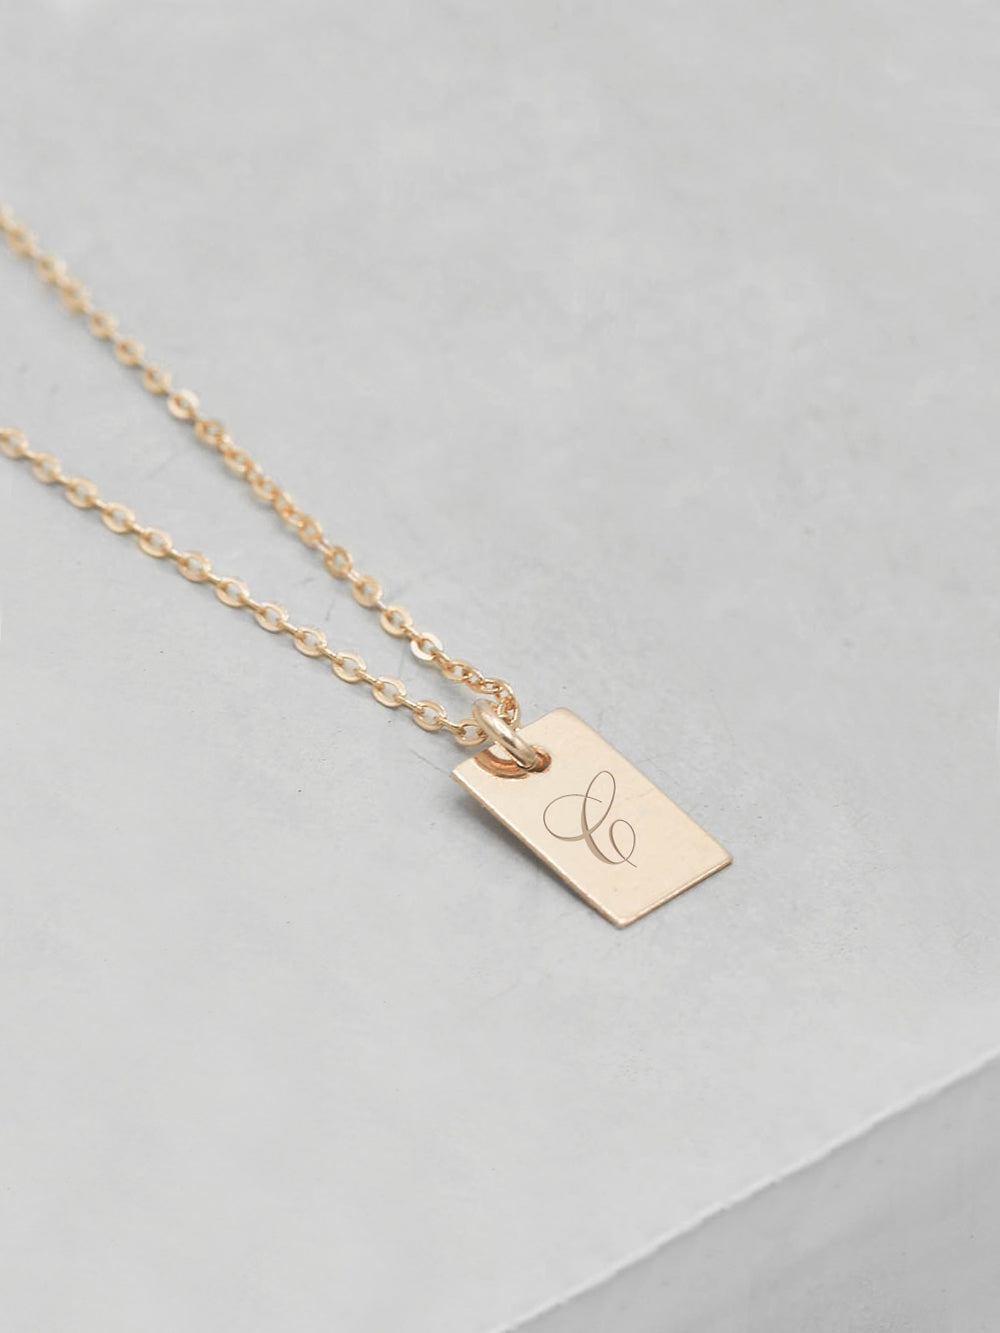 Gold Mini Tag Necklace by The Faint Hearted Jewelry